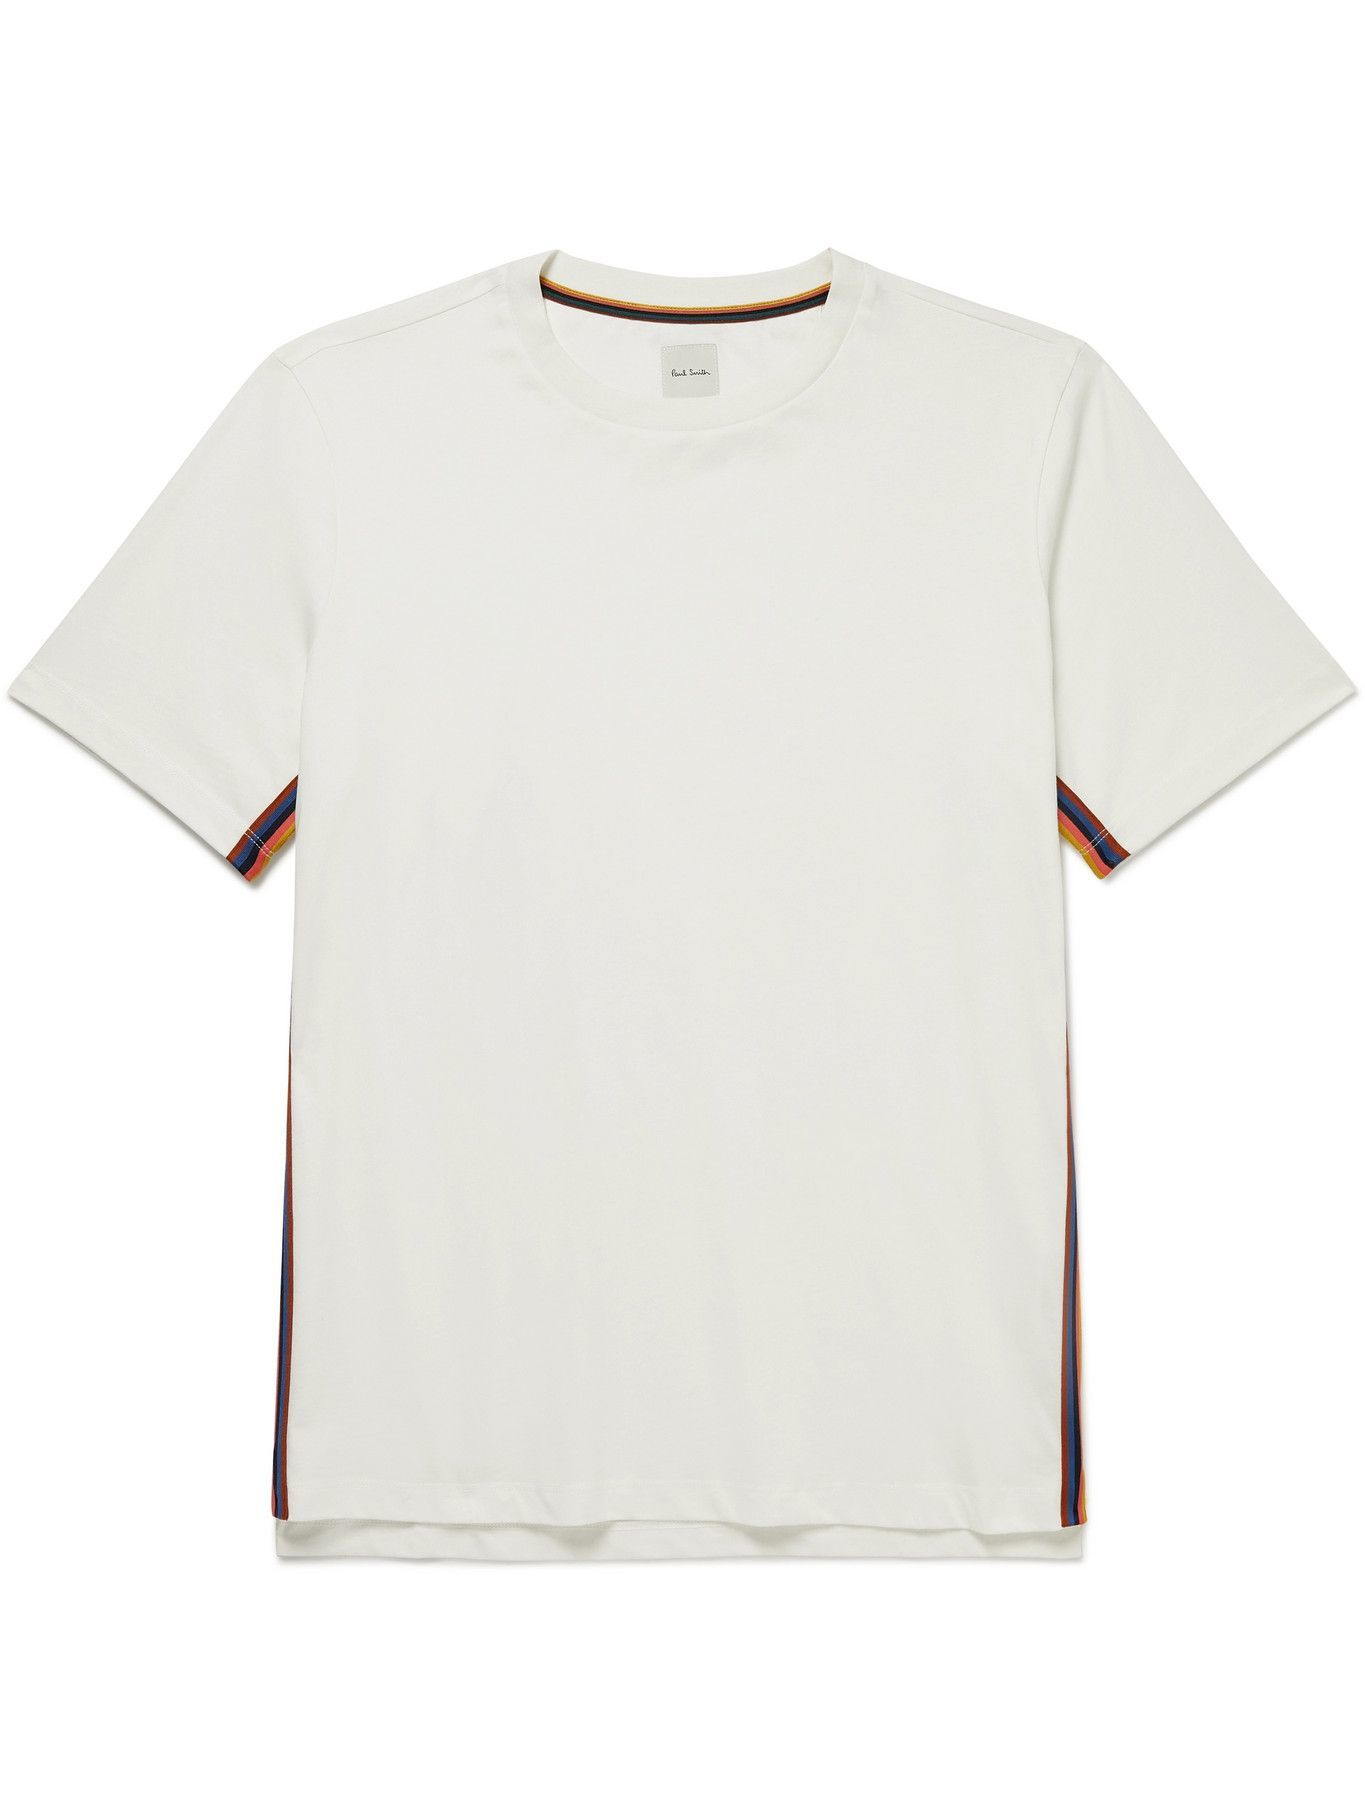 Photo: PAUL SMITH - Striped Webbing-Trimmed Cotton-Jersey T-Shirt - White